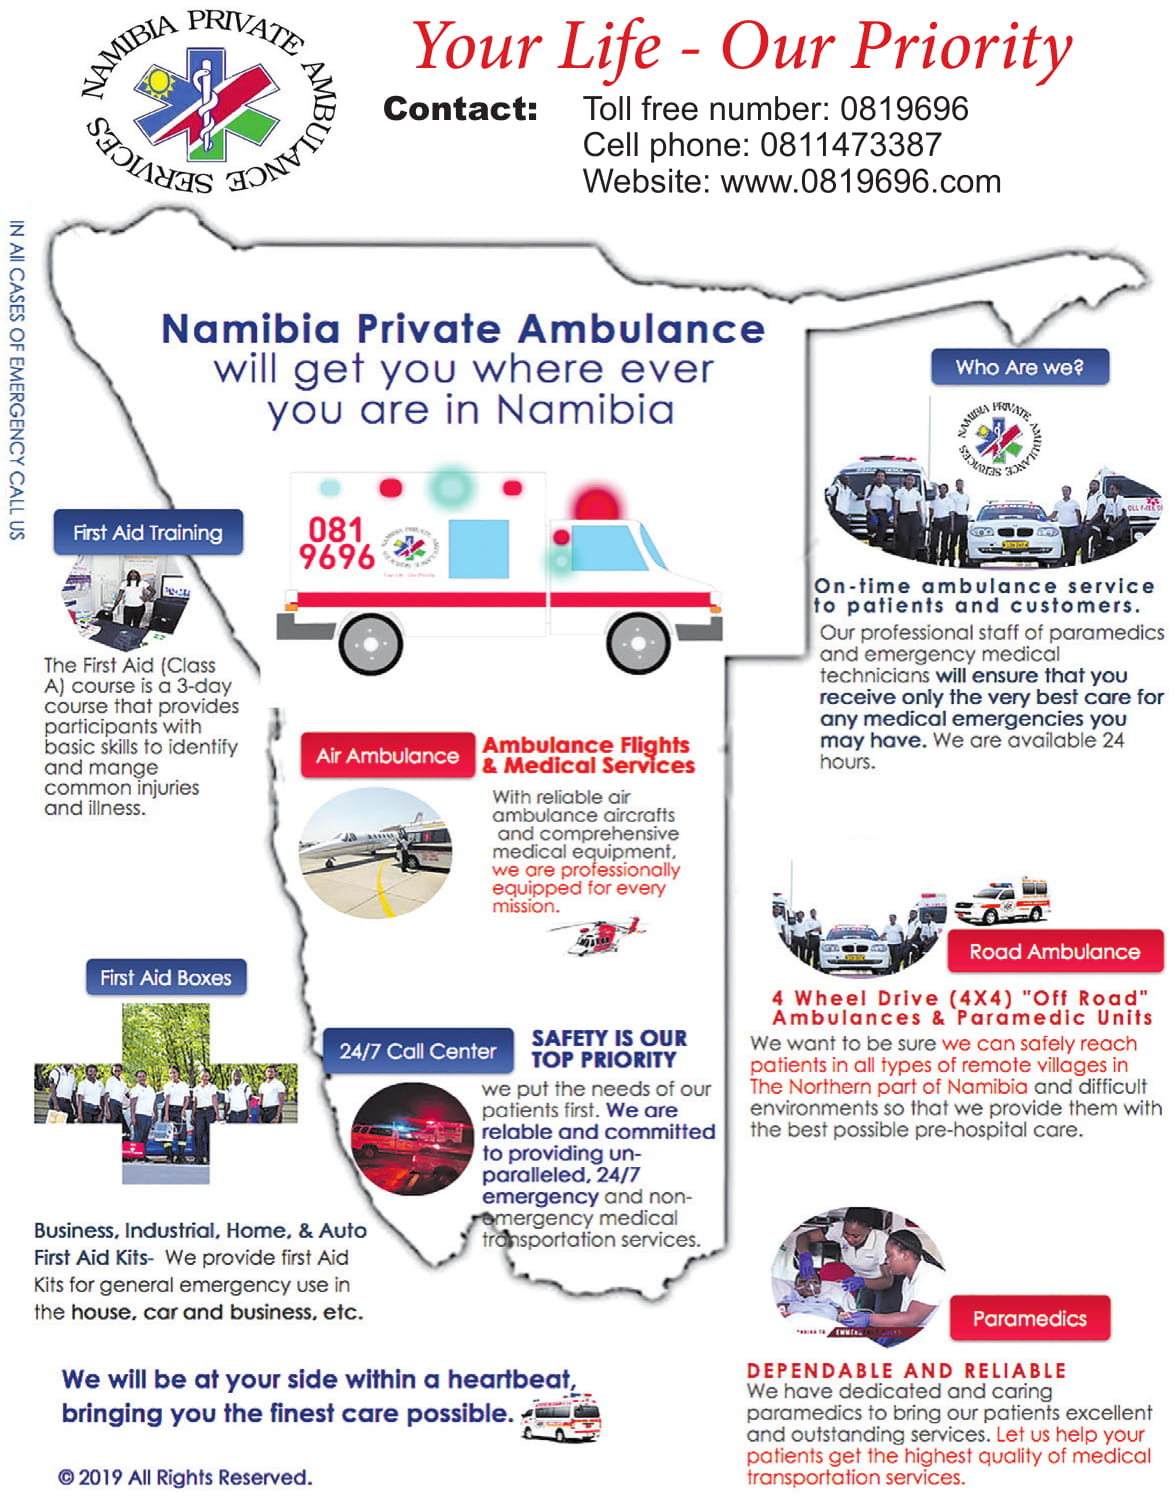 Namibia Private Ambulance Services